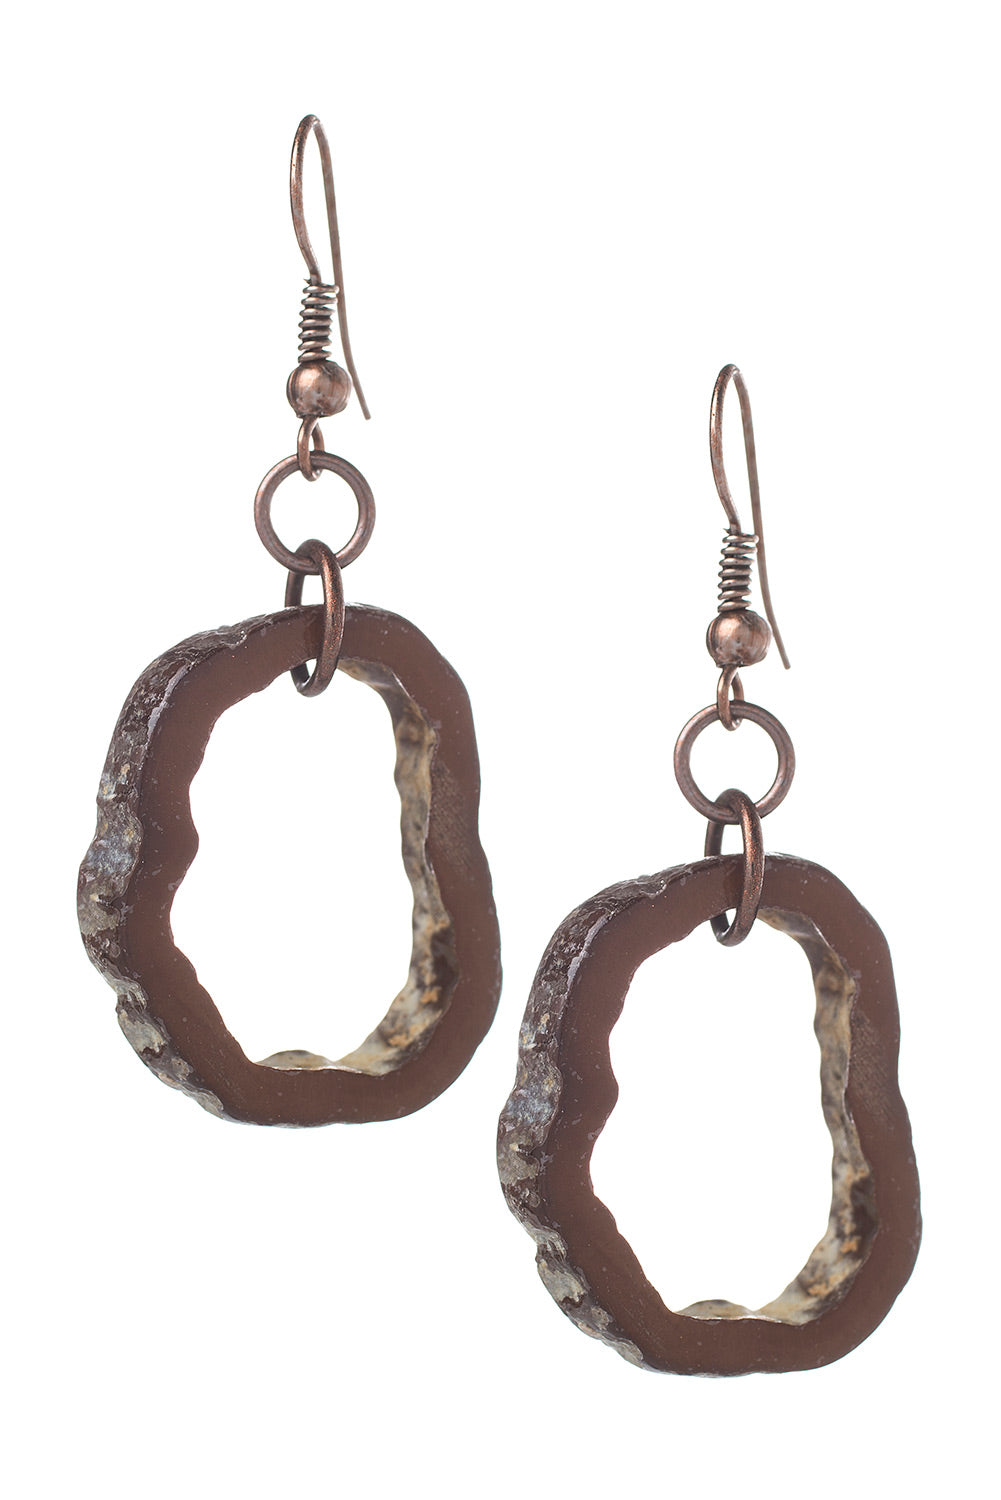 Type 3 Wood You, Could You? Earrings